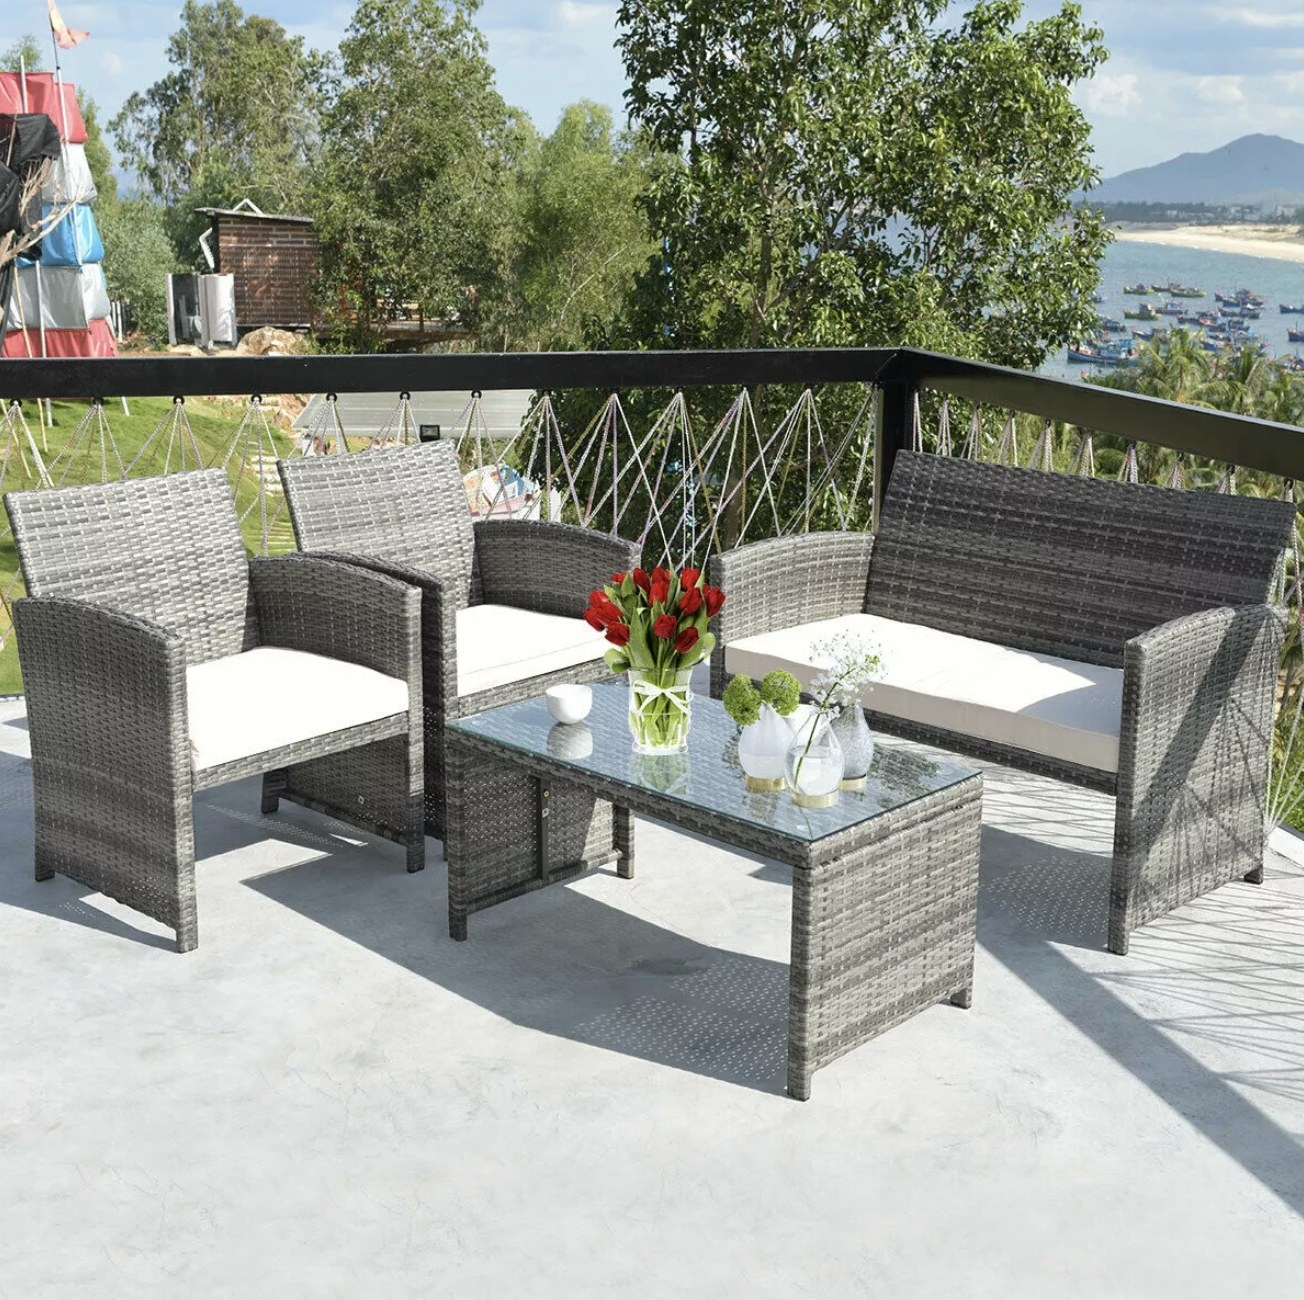 The patio set of three seats and a coffee table in a wicker material